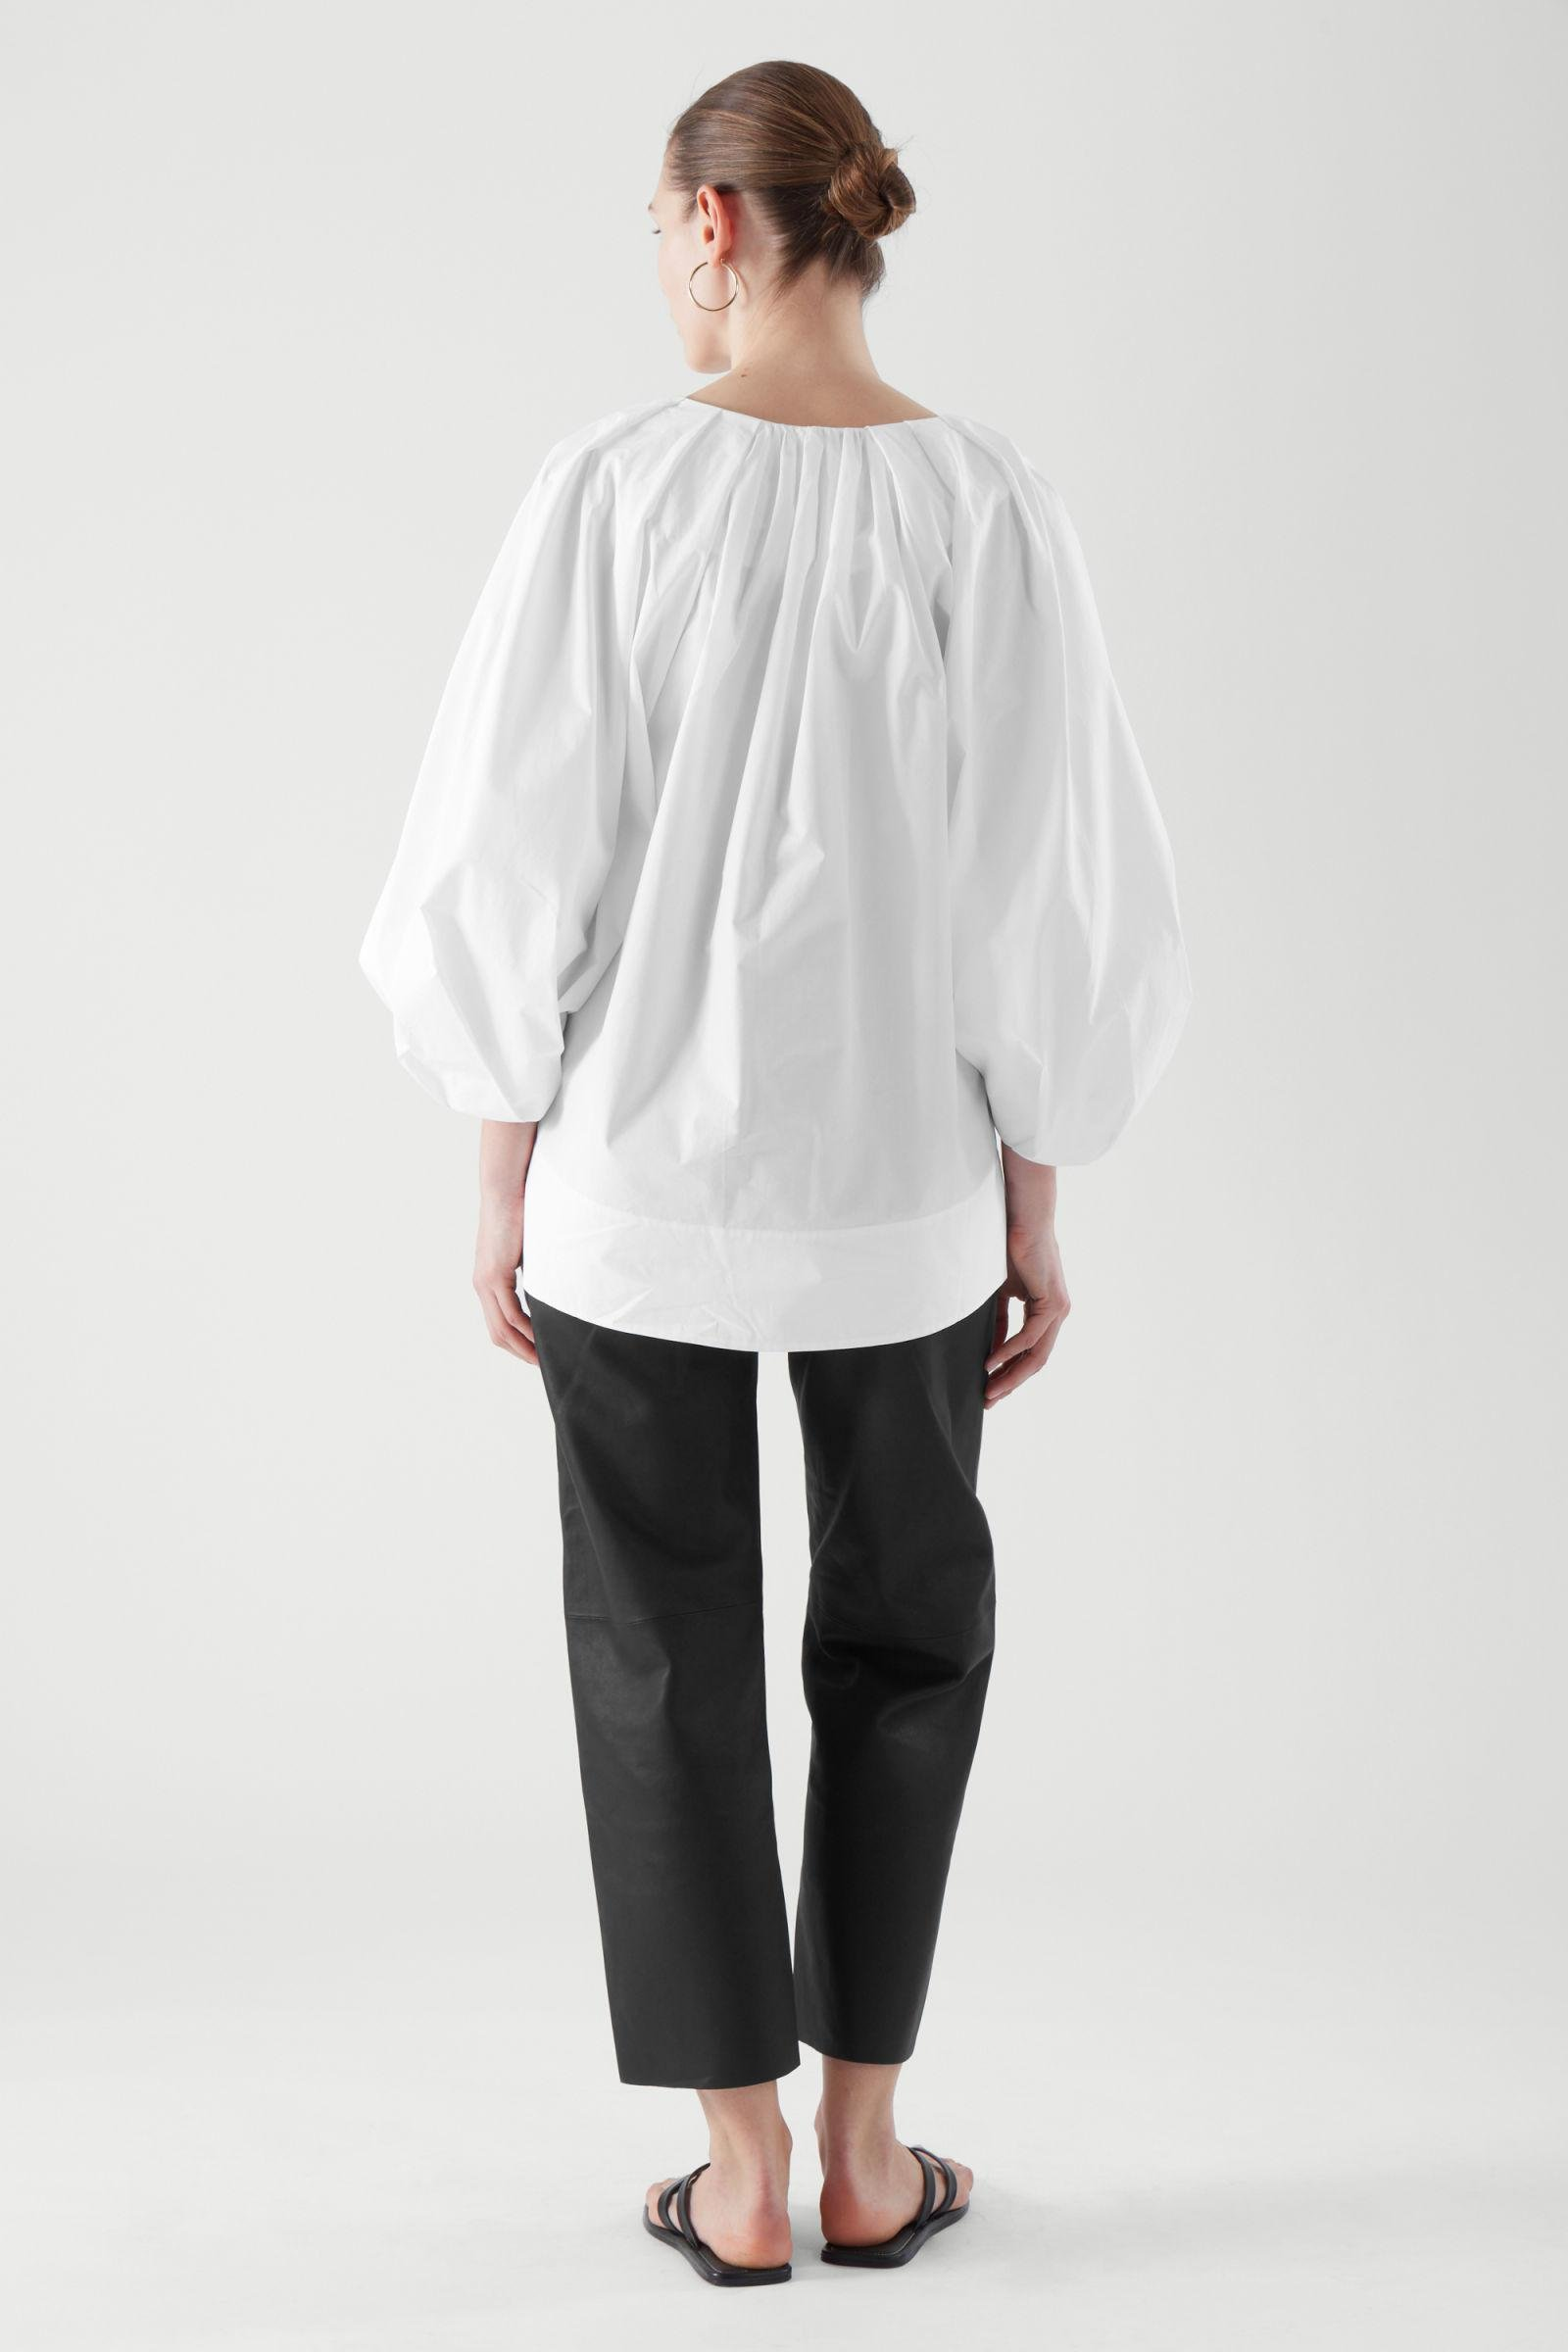 EMBROIDERED BLOUSE 4